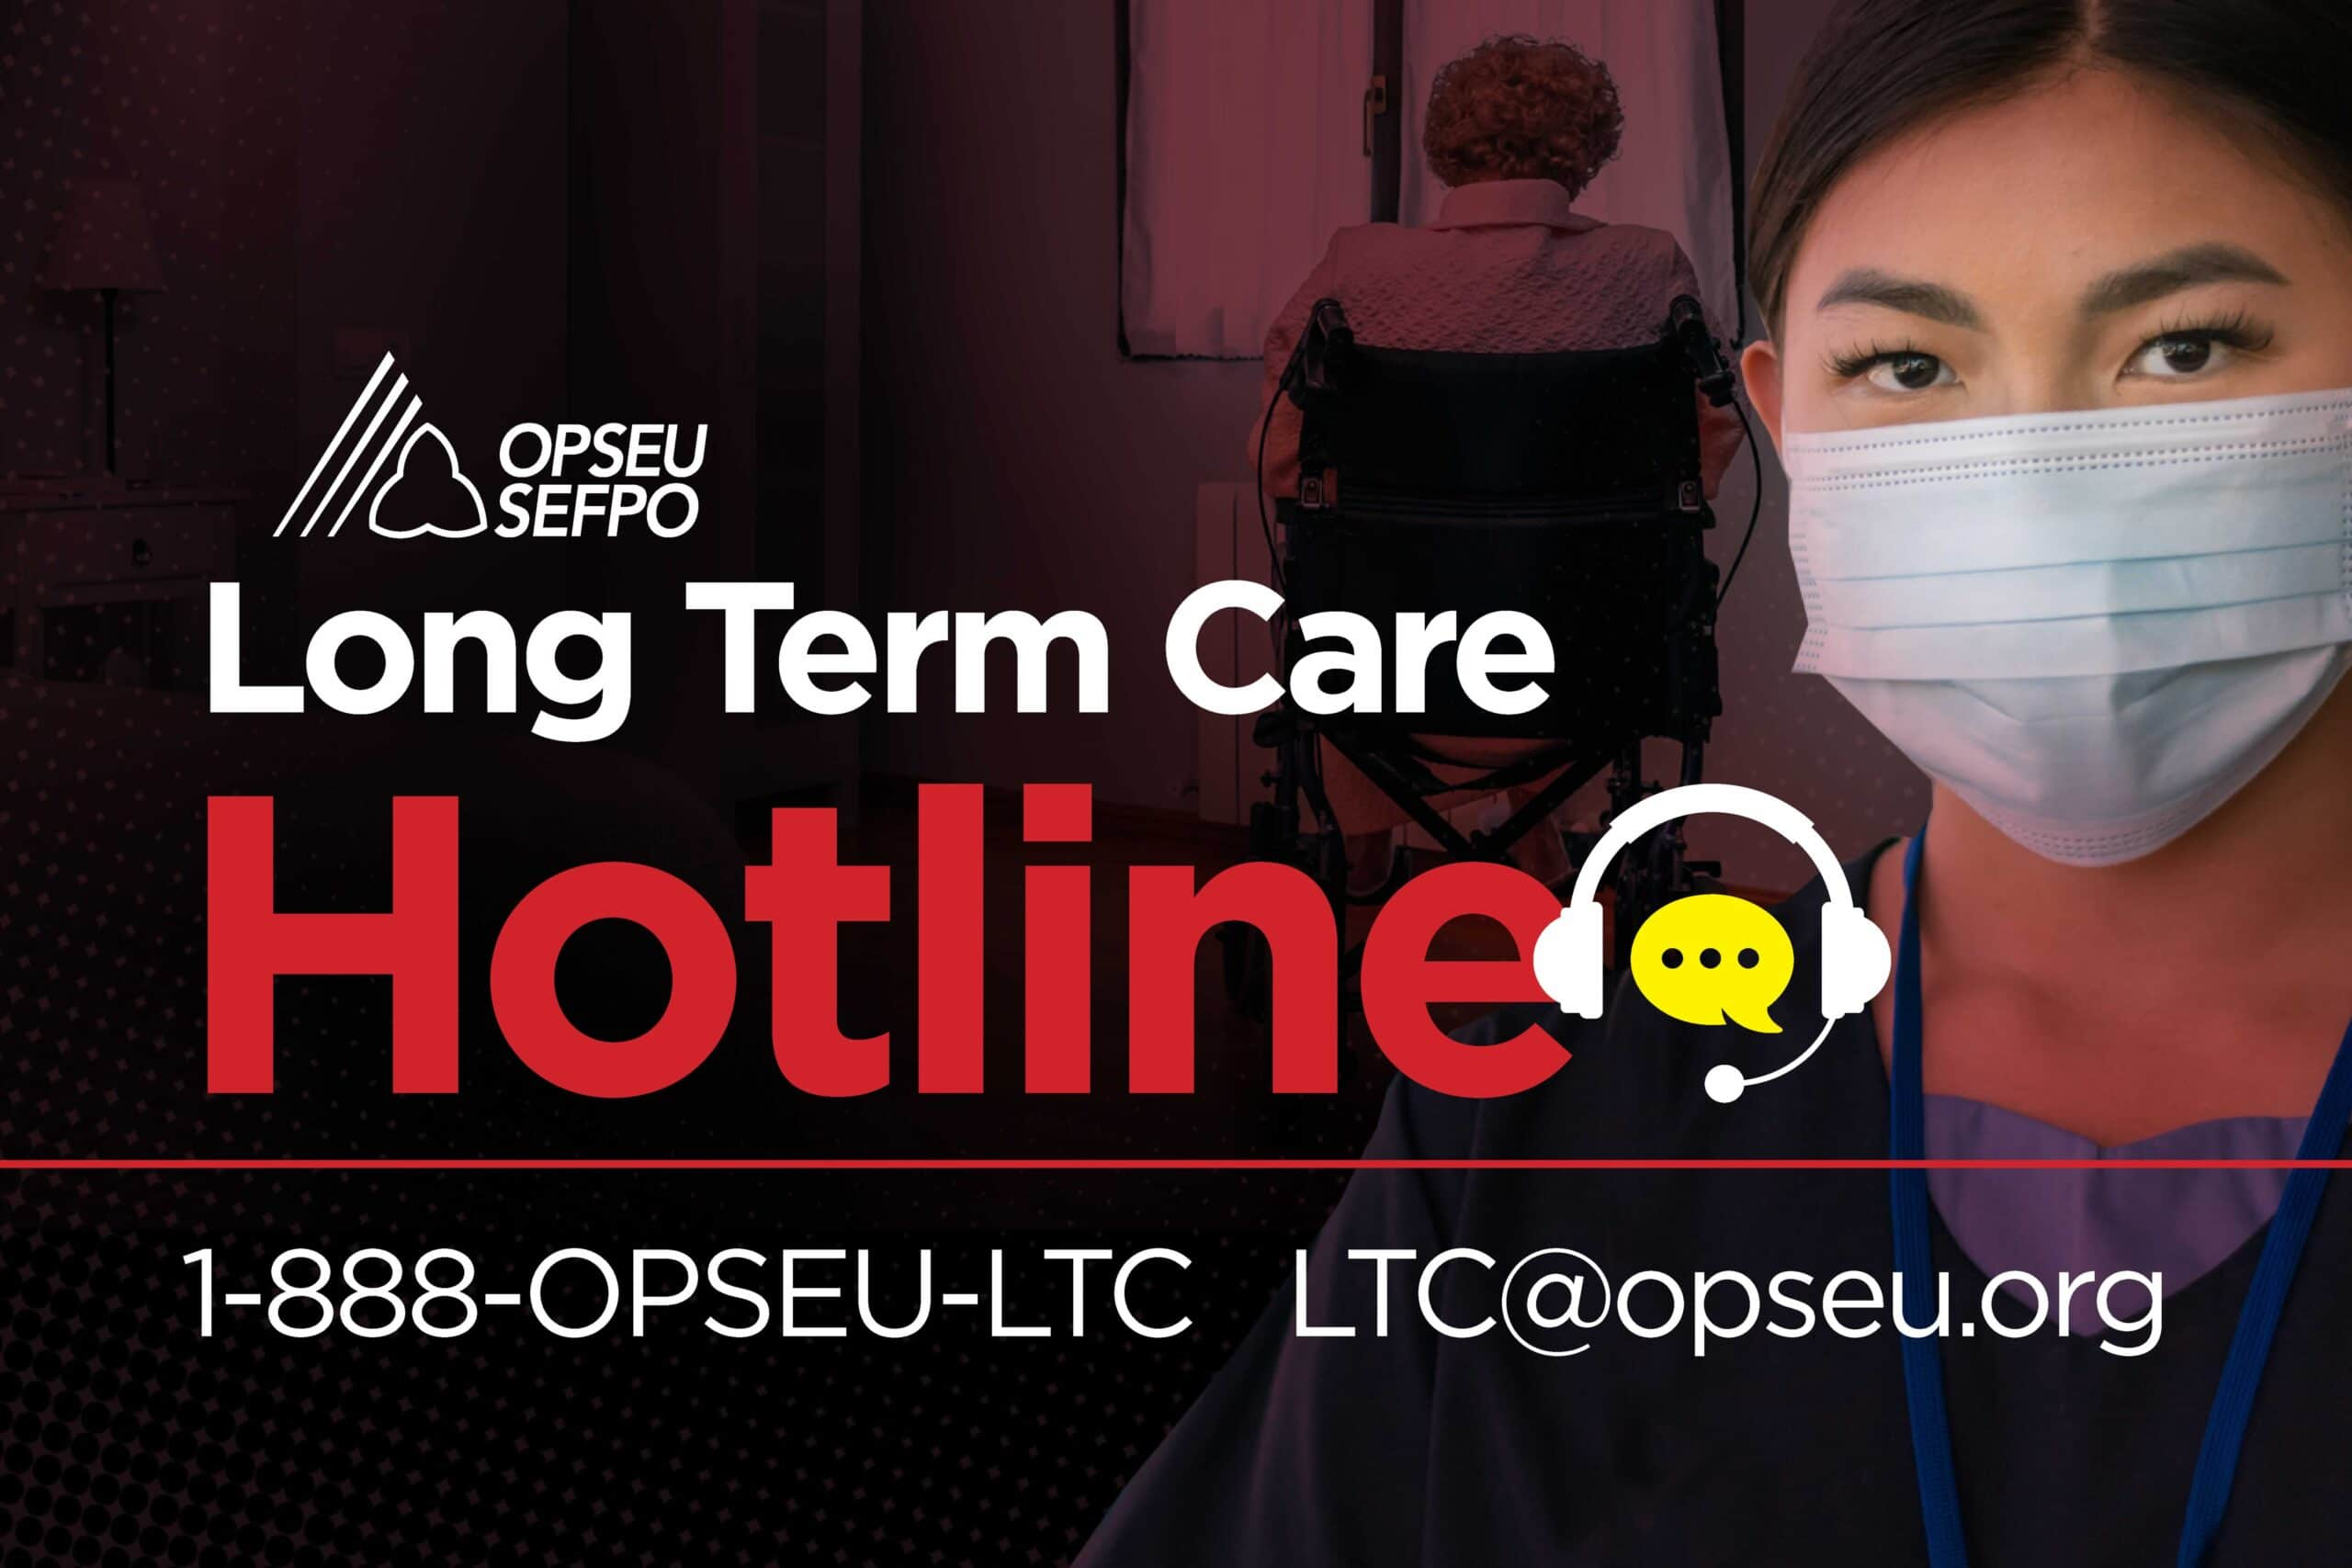 Picture of LTC worker in a mask with text: Long Term Care Hotline 1-888-OPSEU-LTC LTC@opseu.org